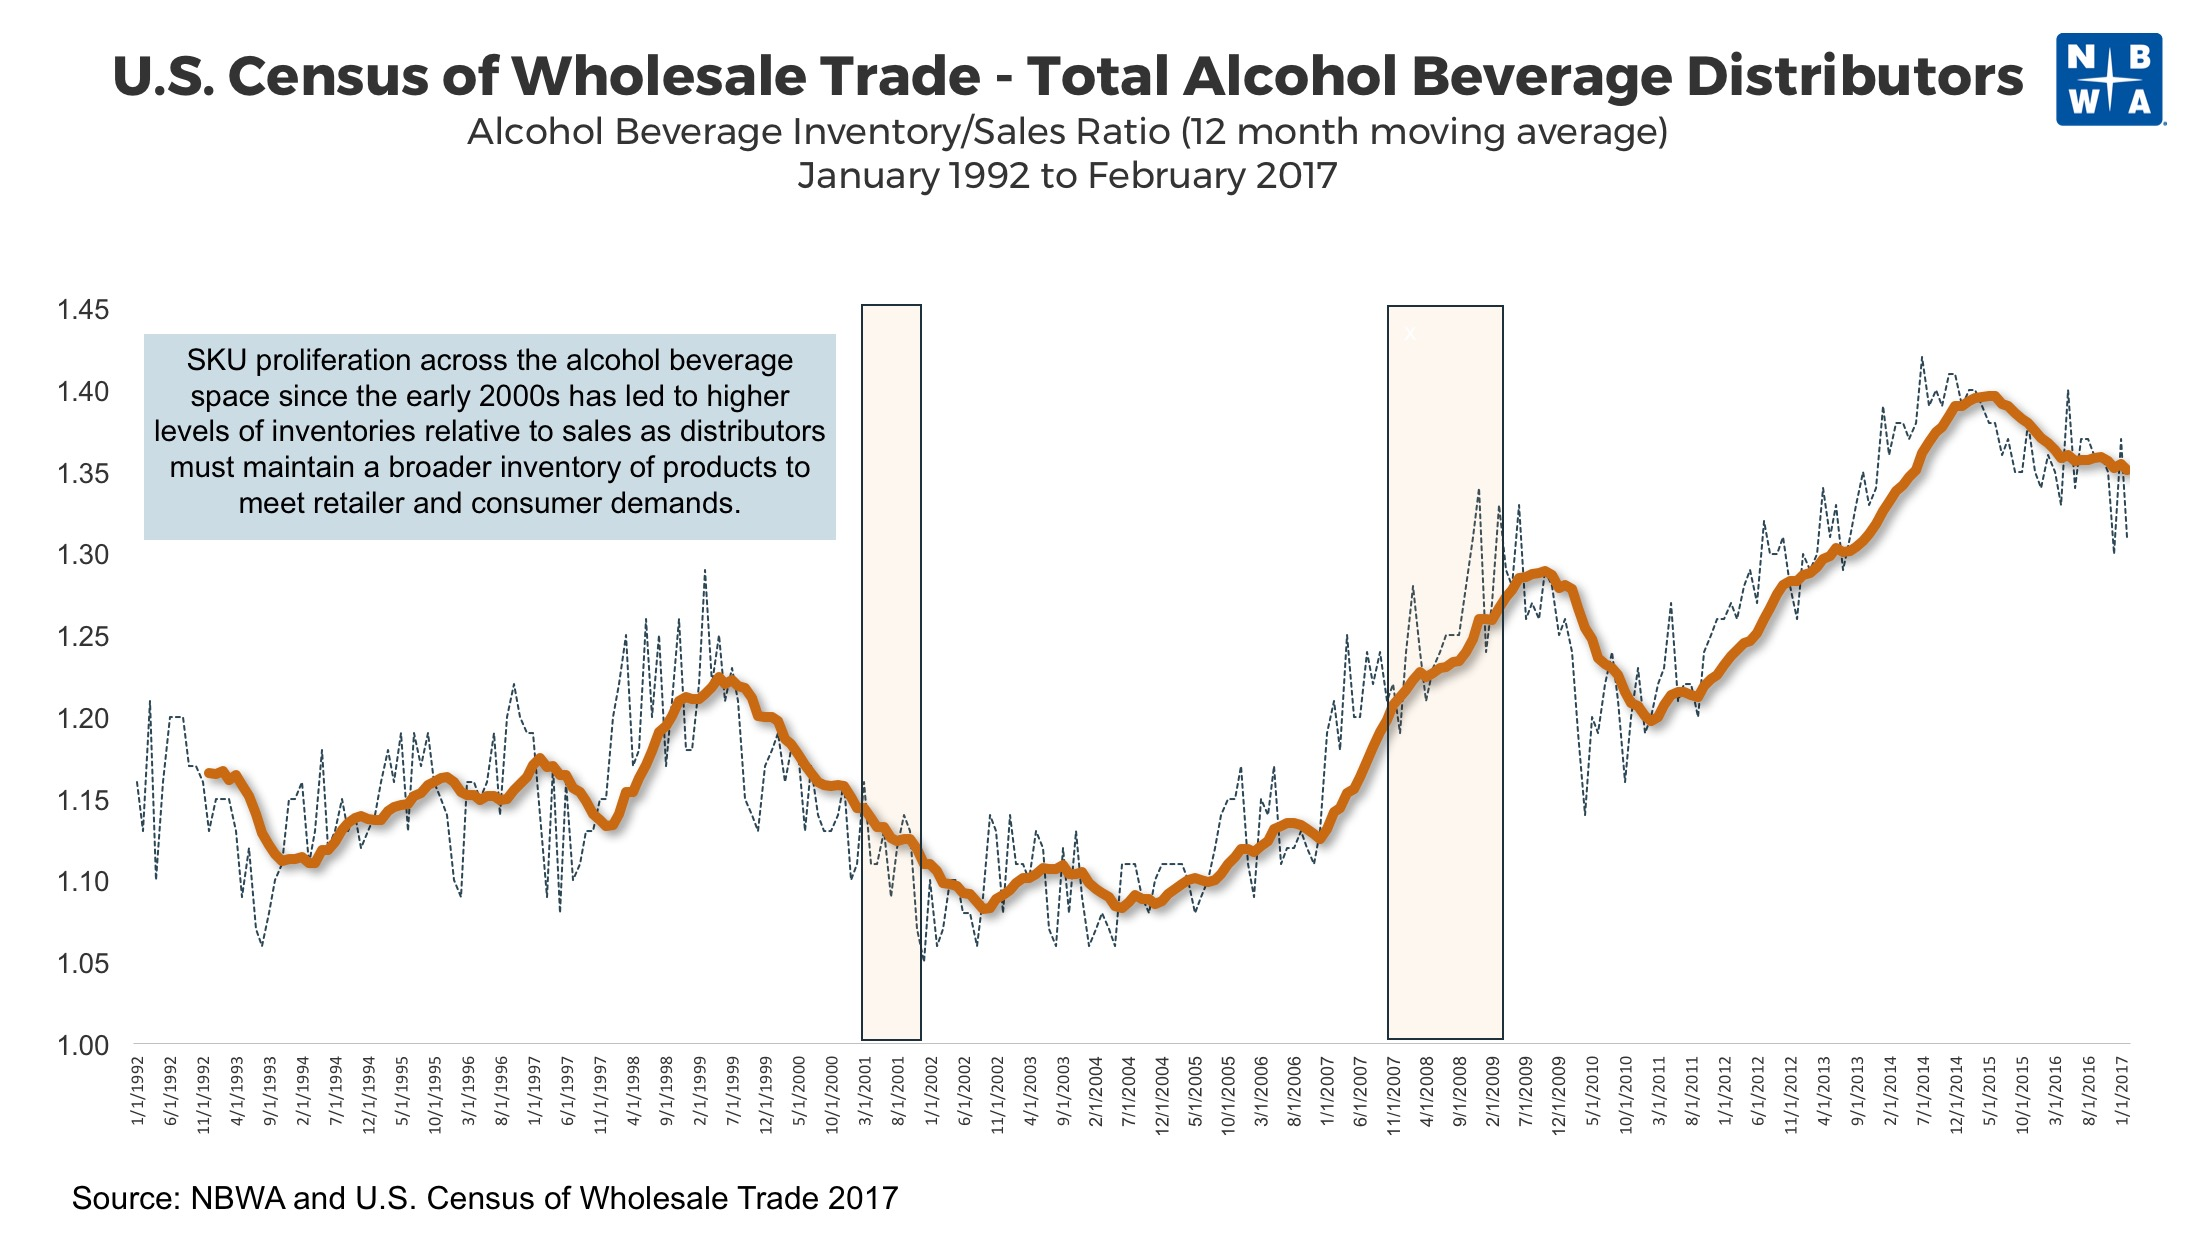 Alcohol Beverage Inventory Sales Ratios 1992 to 2017